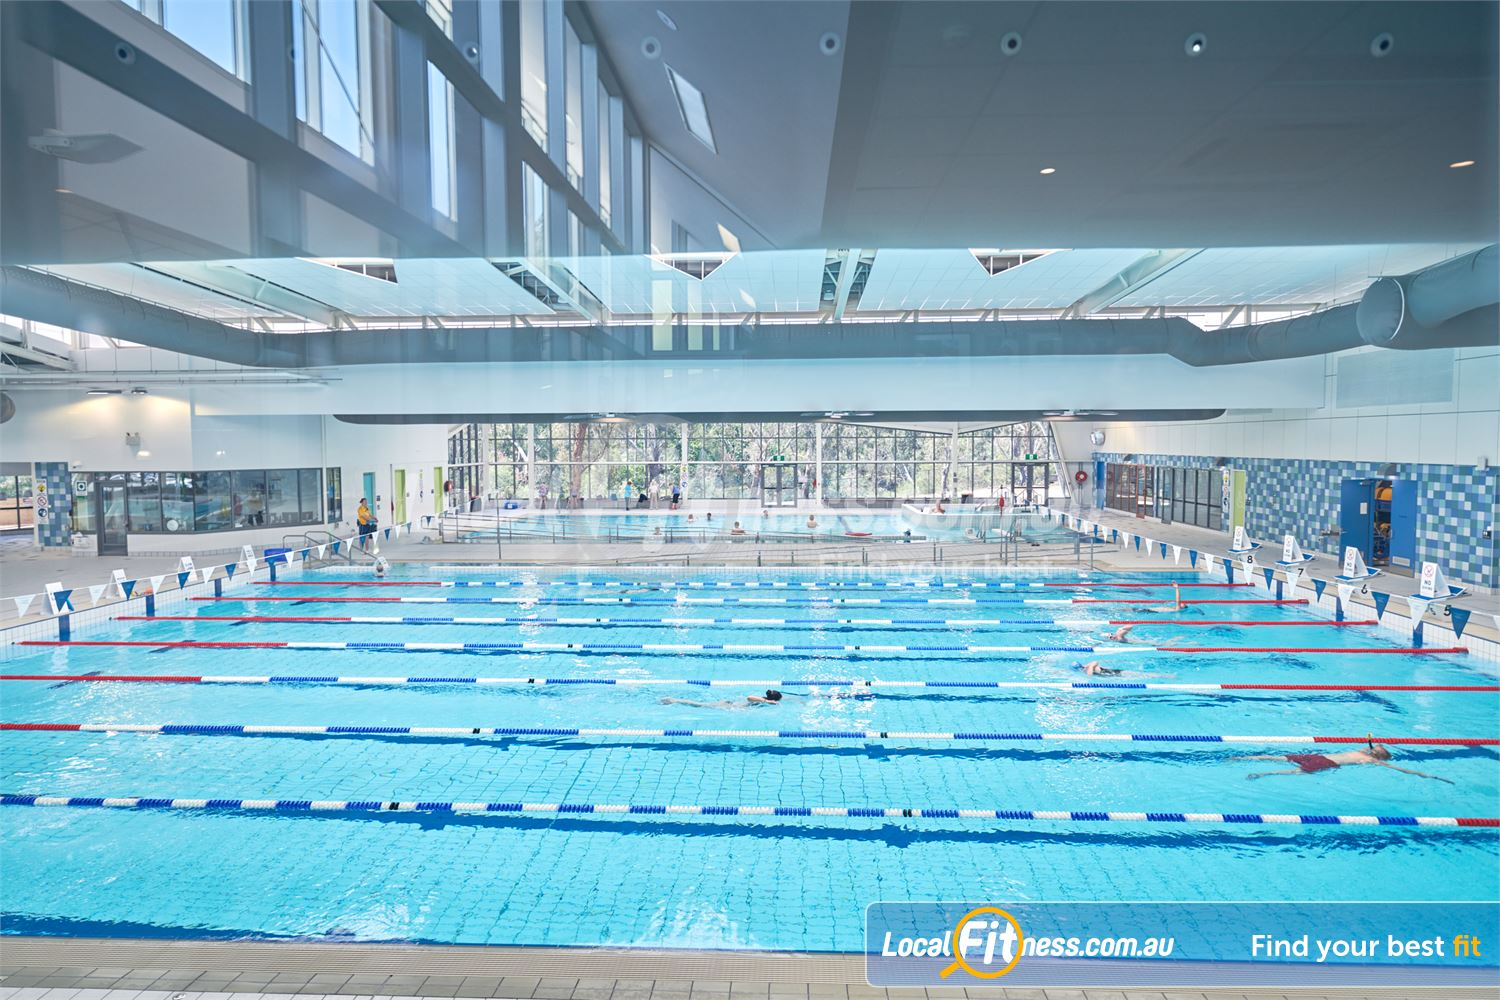 Eltham Leisure Centre Near Templestowe Lap lane swimming is open for all at our Eltham swimming pool.